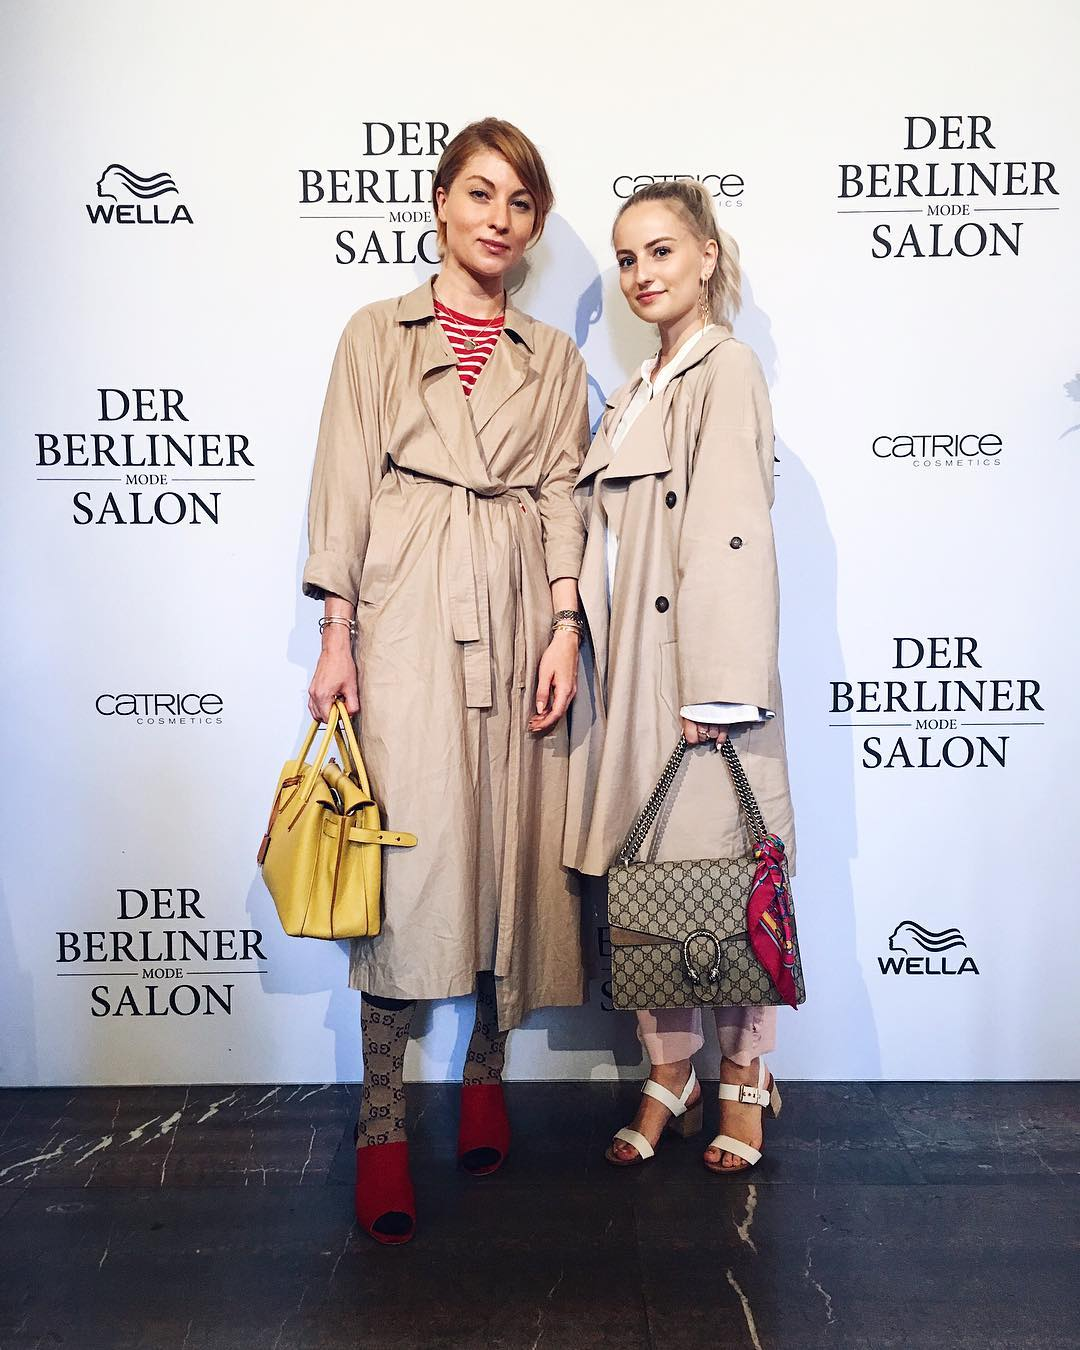 Berlin Fashion Week Q&A - KIM ENGEL